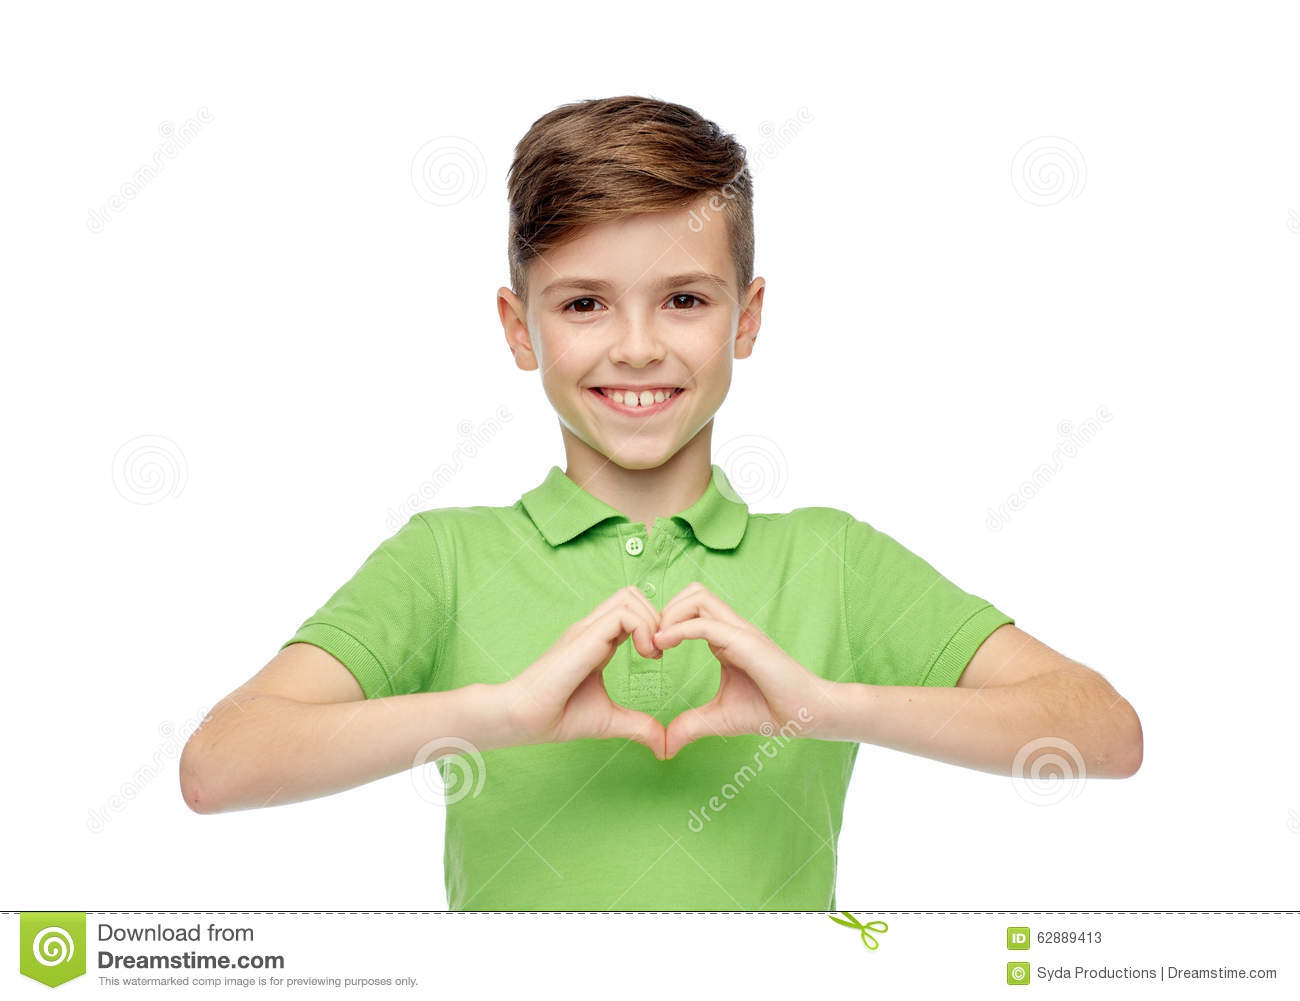 Happy Boy Showing Heart Hand Sign Stock Image - Image of copyspace ...